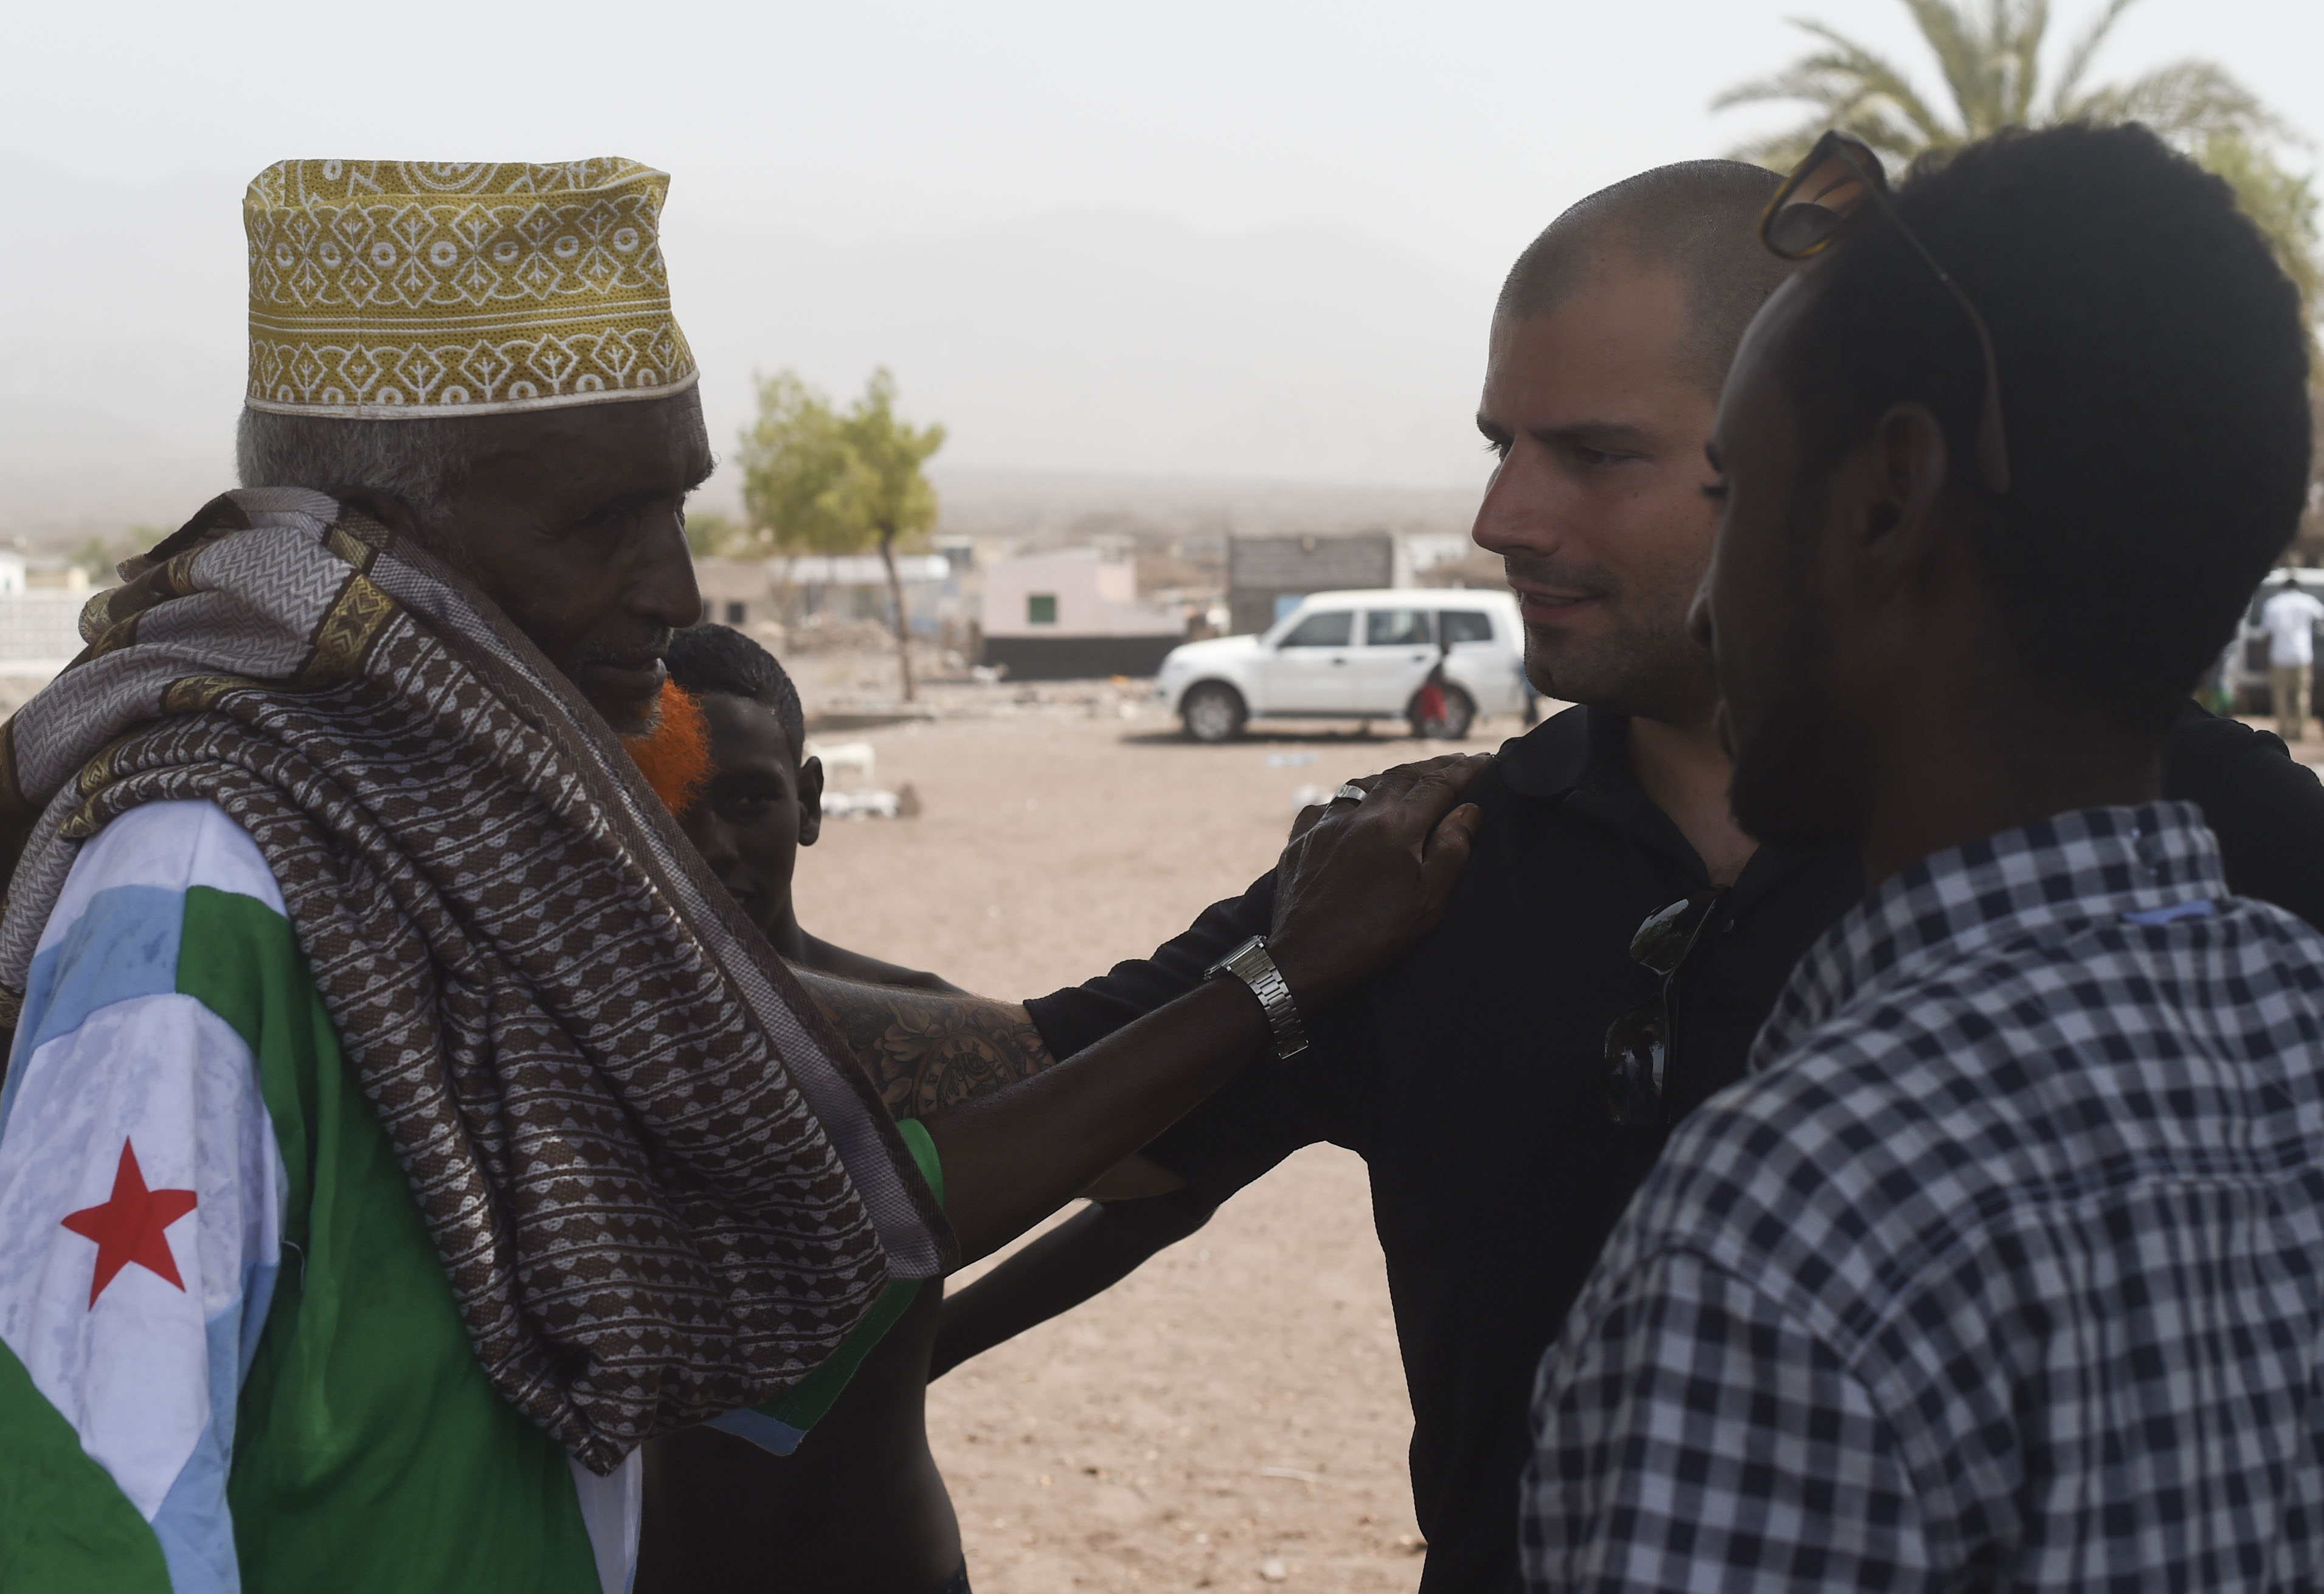 U.S. Army Staff Sgt. Frank Nordby, 411th Civil Affairs Battalion, Bravo Company, Civil Affairs Team 3, an associated unit of the Combined Joint Task Force-Horn of Africa, greets a village elder of Sagallou, Djibouti during a key leader engagement on June 28, 2017. These visits support CJTF-HOA's efforts to build positive relationships within the region and assist U.S. Africa Command in its efforts to promote regional security, stability and prosperity. (U.S. Air Force photo by Staff Sgt. Eboni Prince)